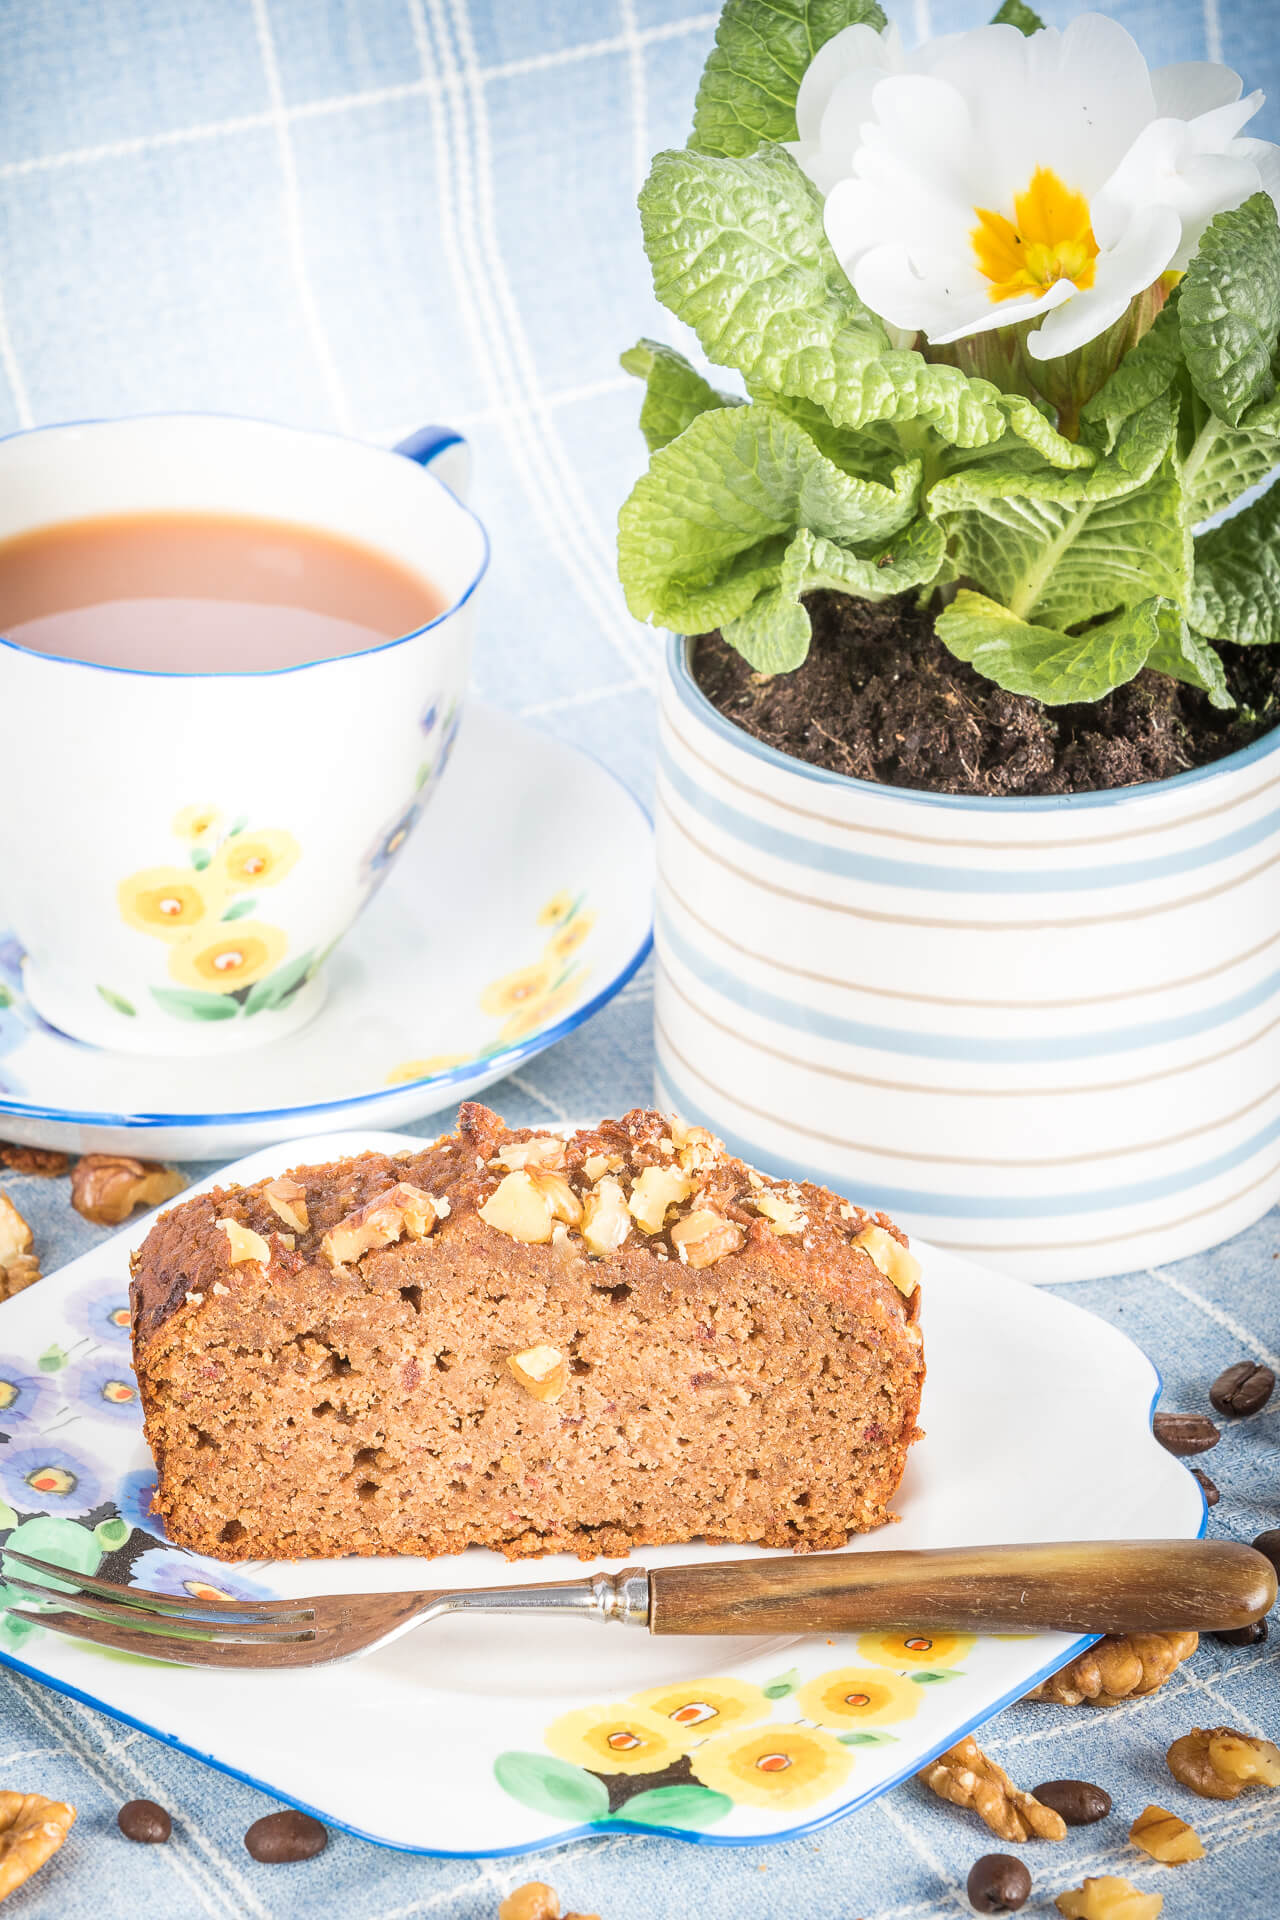 A Slice of Gluten Free Healthy Coffee & Walnut Cake On A Plate With A Cup Of Tea & A Potted Flower